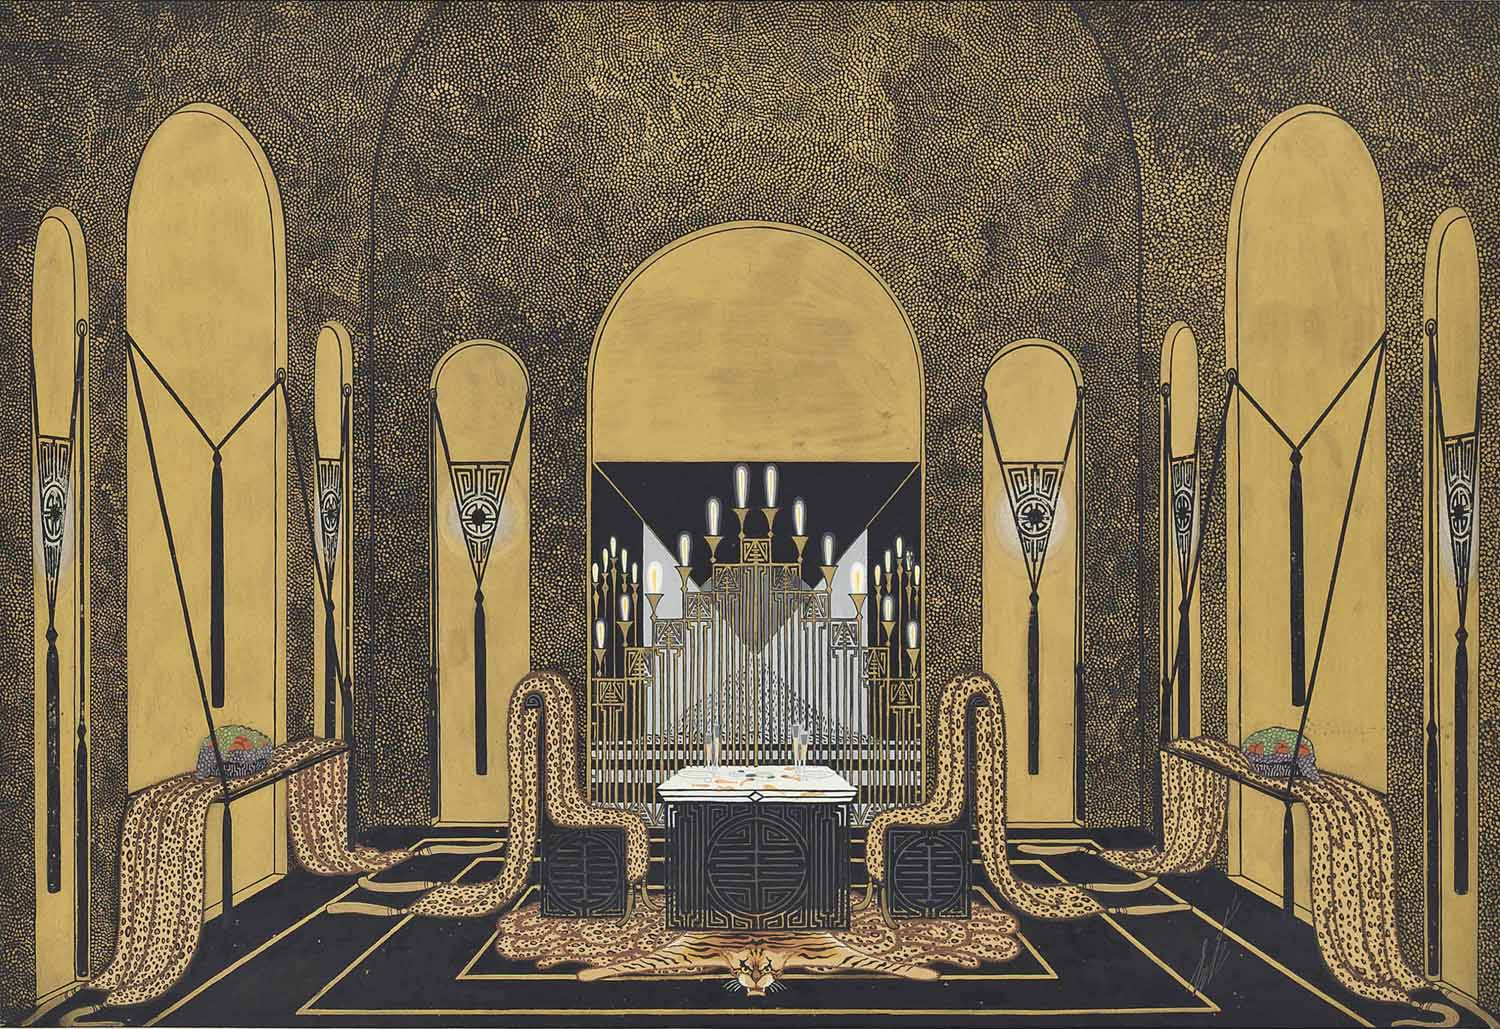 Elaborate black and gold interior with tiger rug